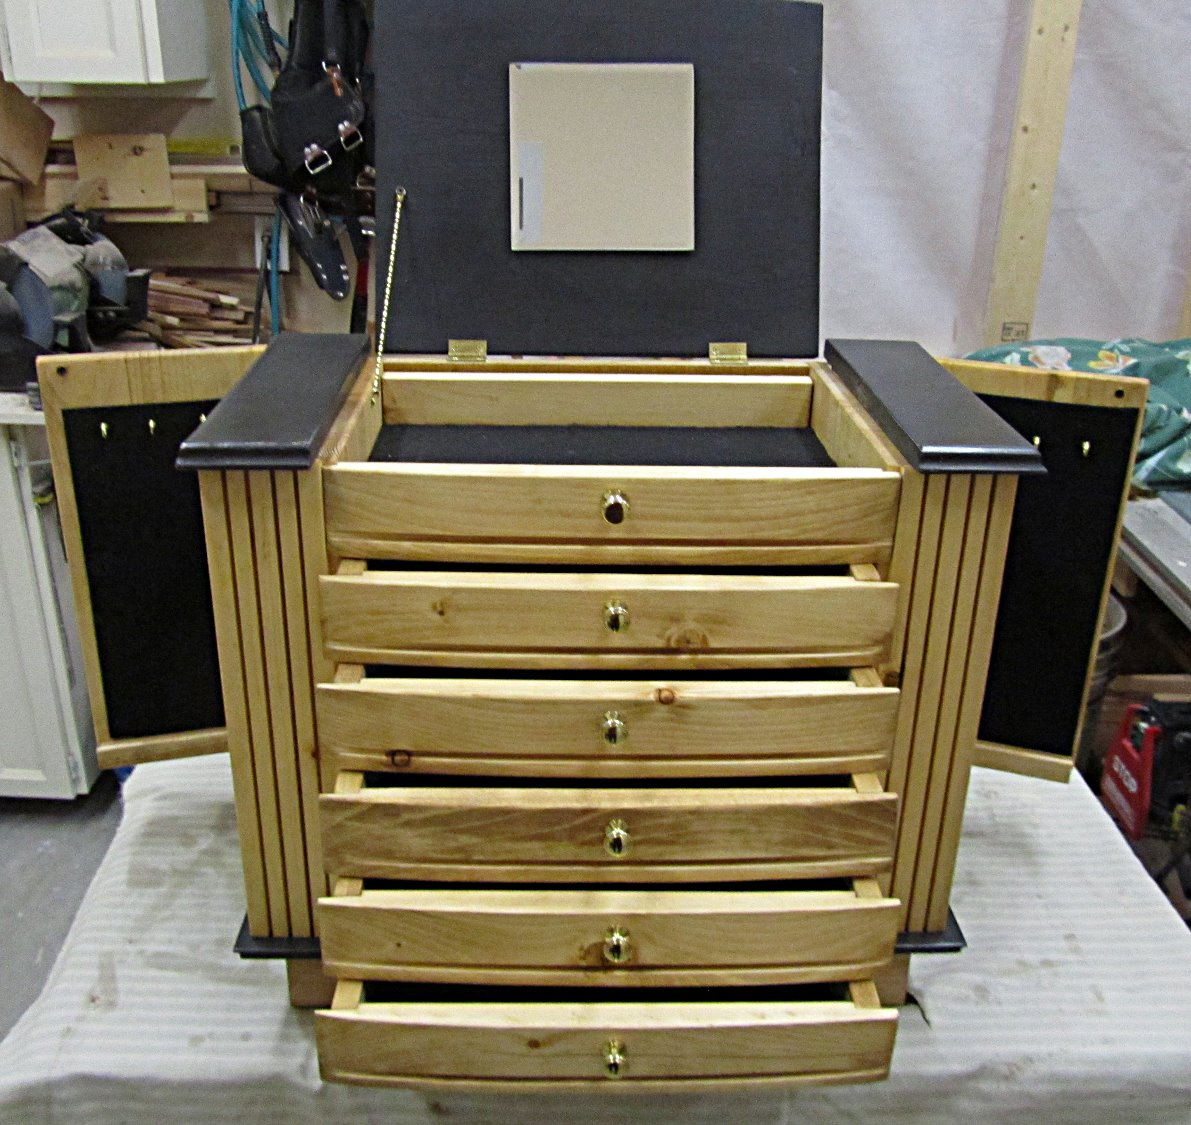 Jewelry cabinet for Kristin